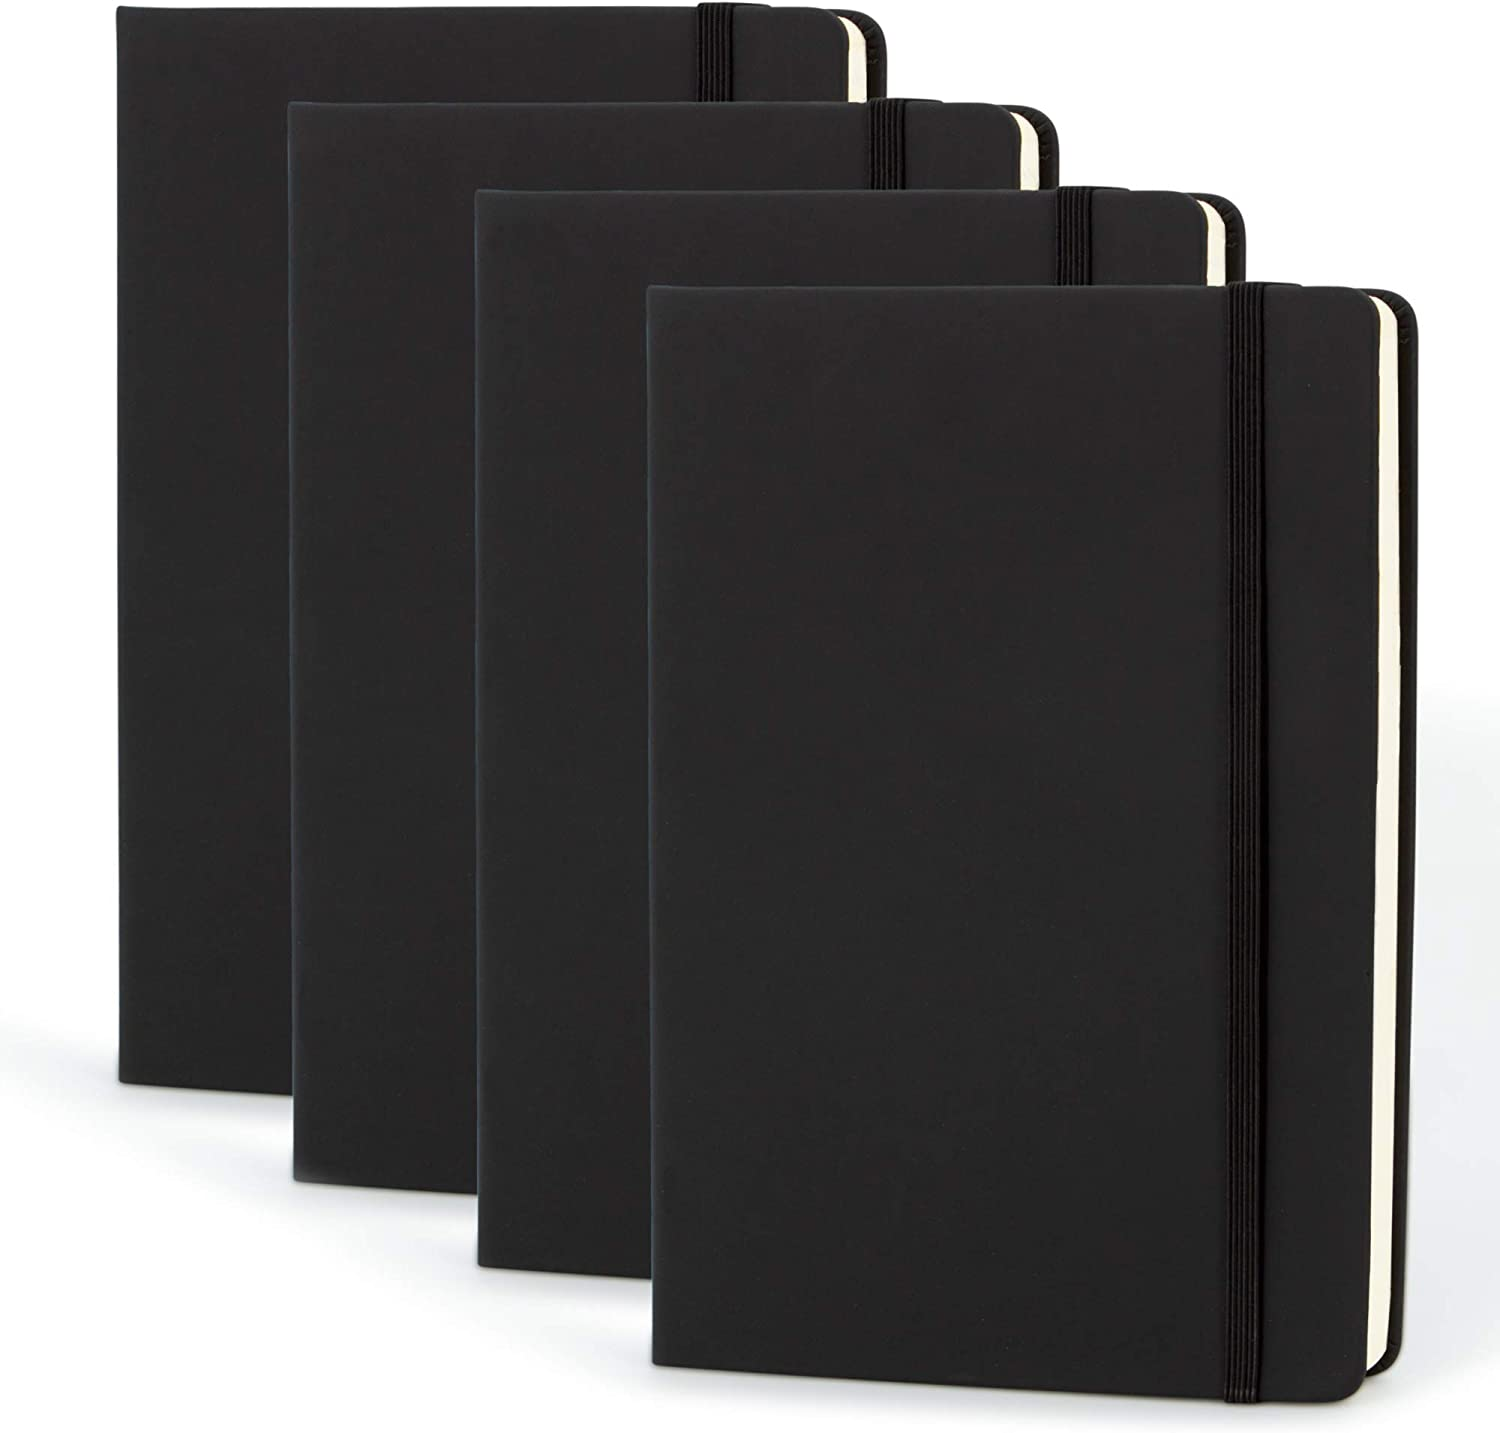 Simply Genius 4 Raleigh Mall Luxury Pack A5 Grid Hardcover Dotted Bullet Notebooks